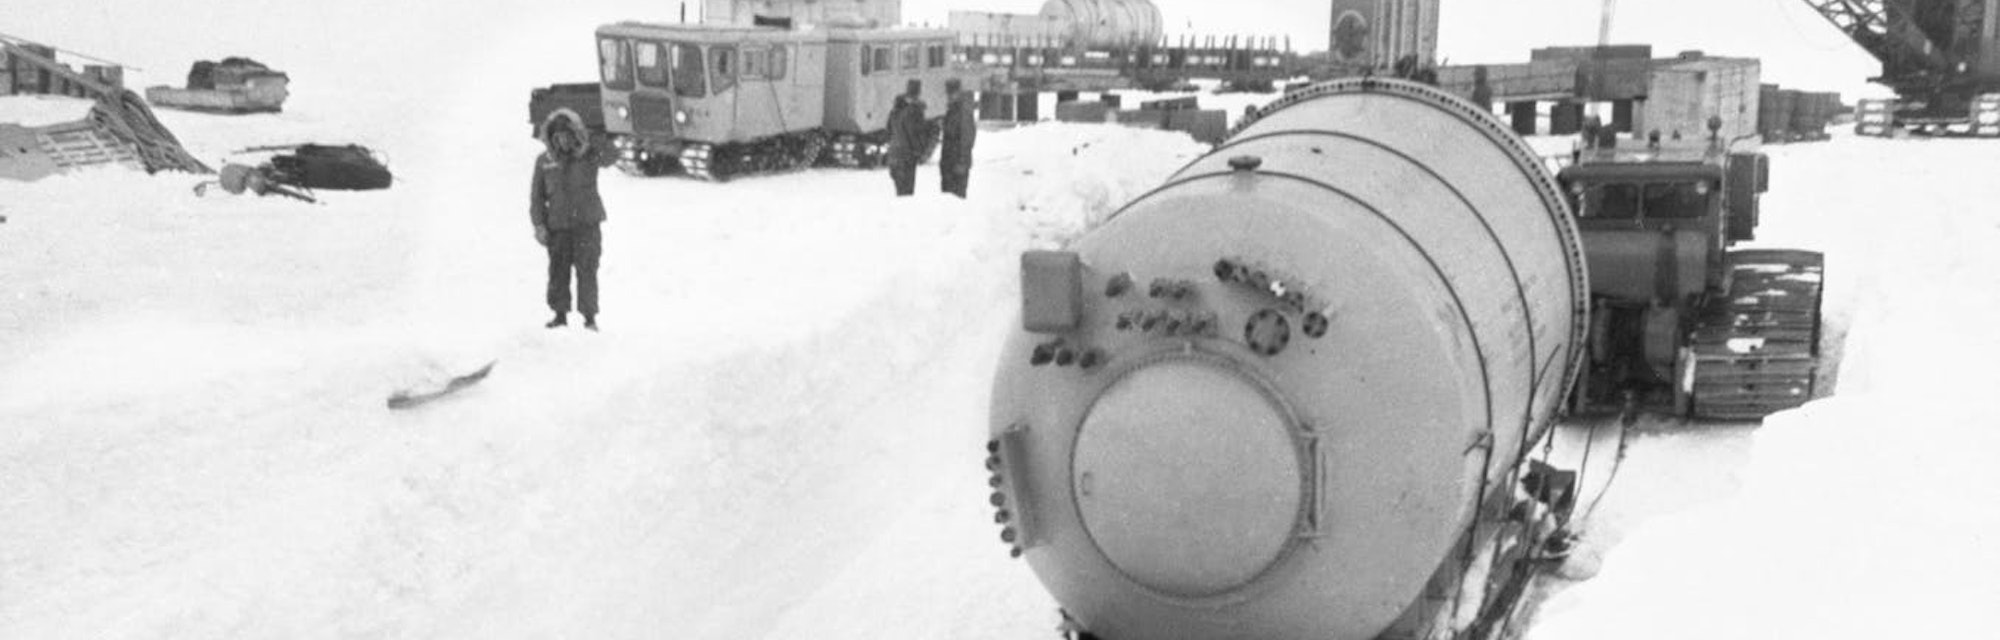 Part of a portable nuclear power plant arrives at Camp Century in 1960.